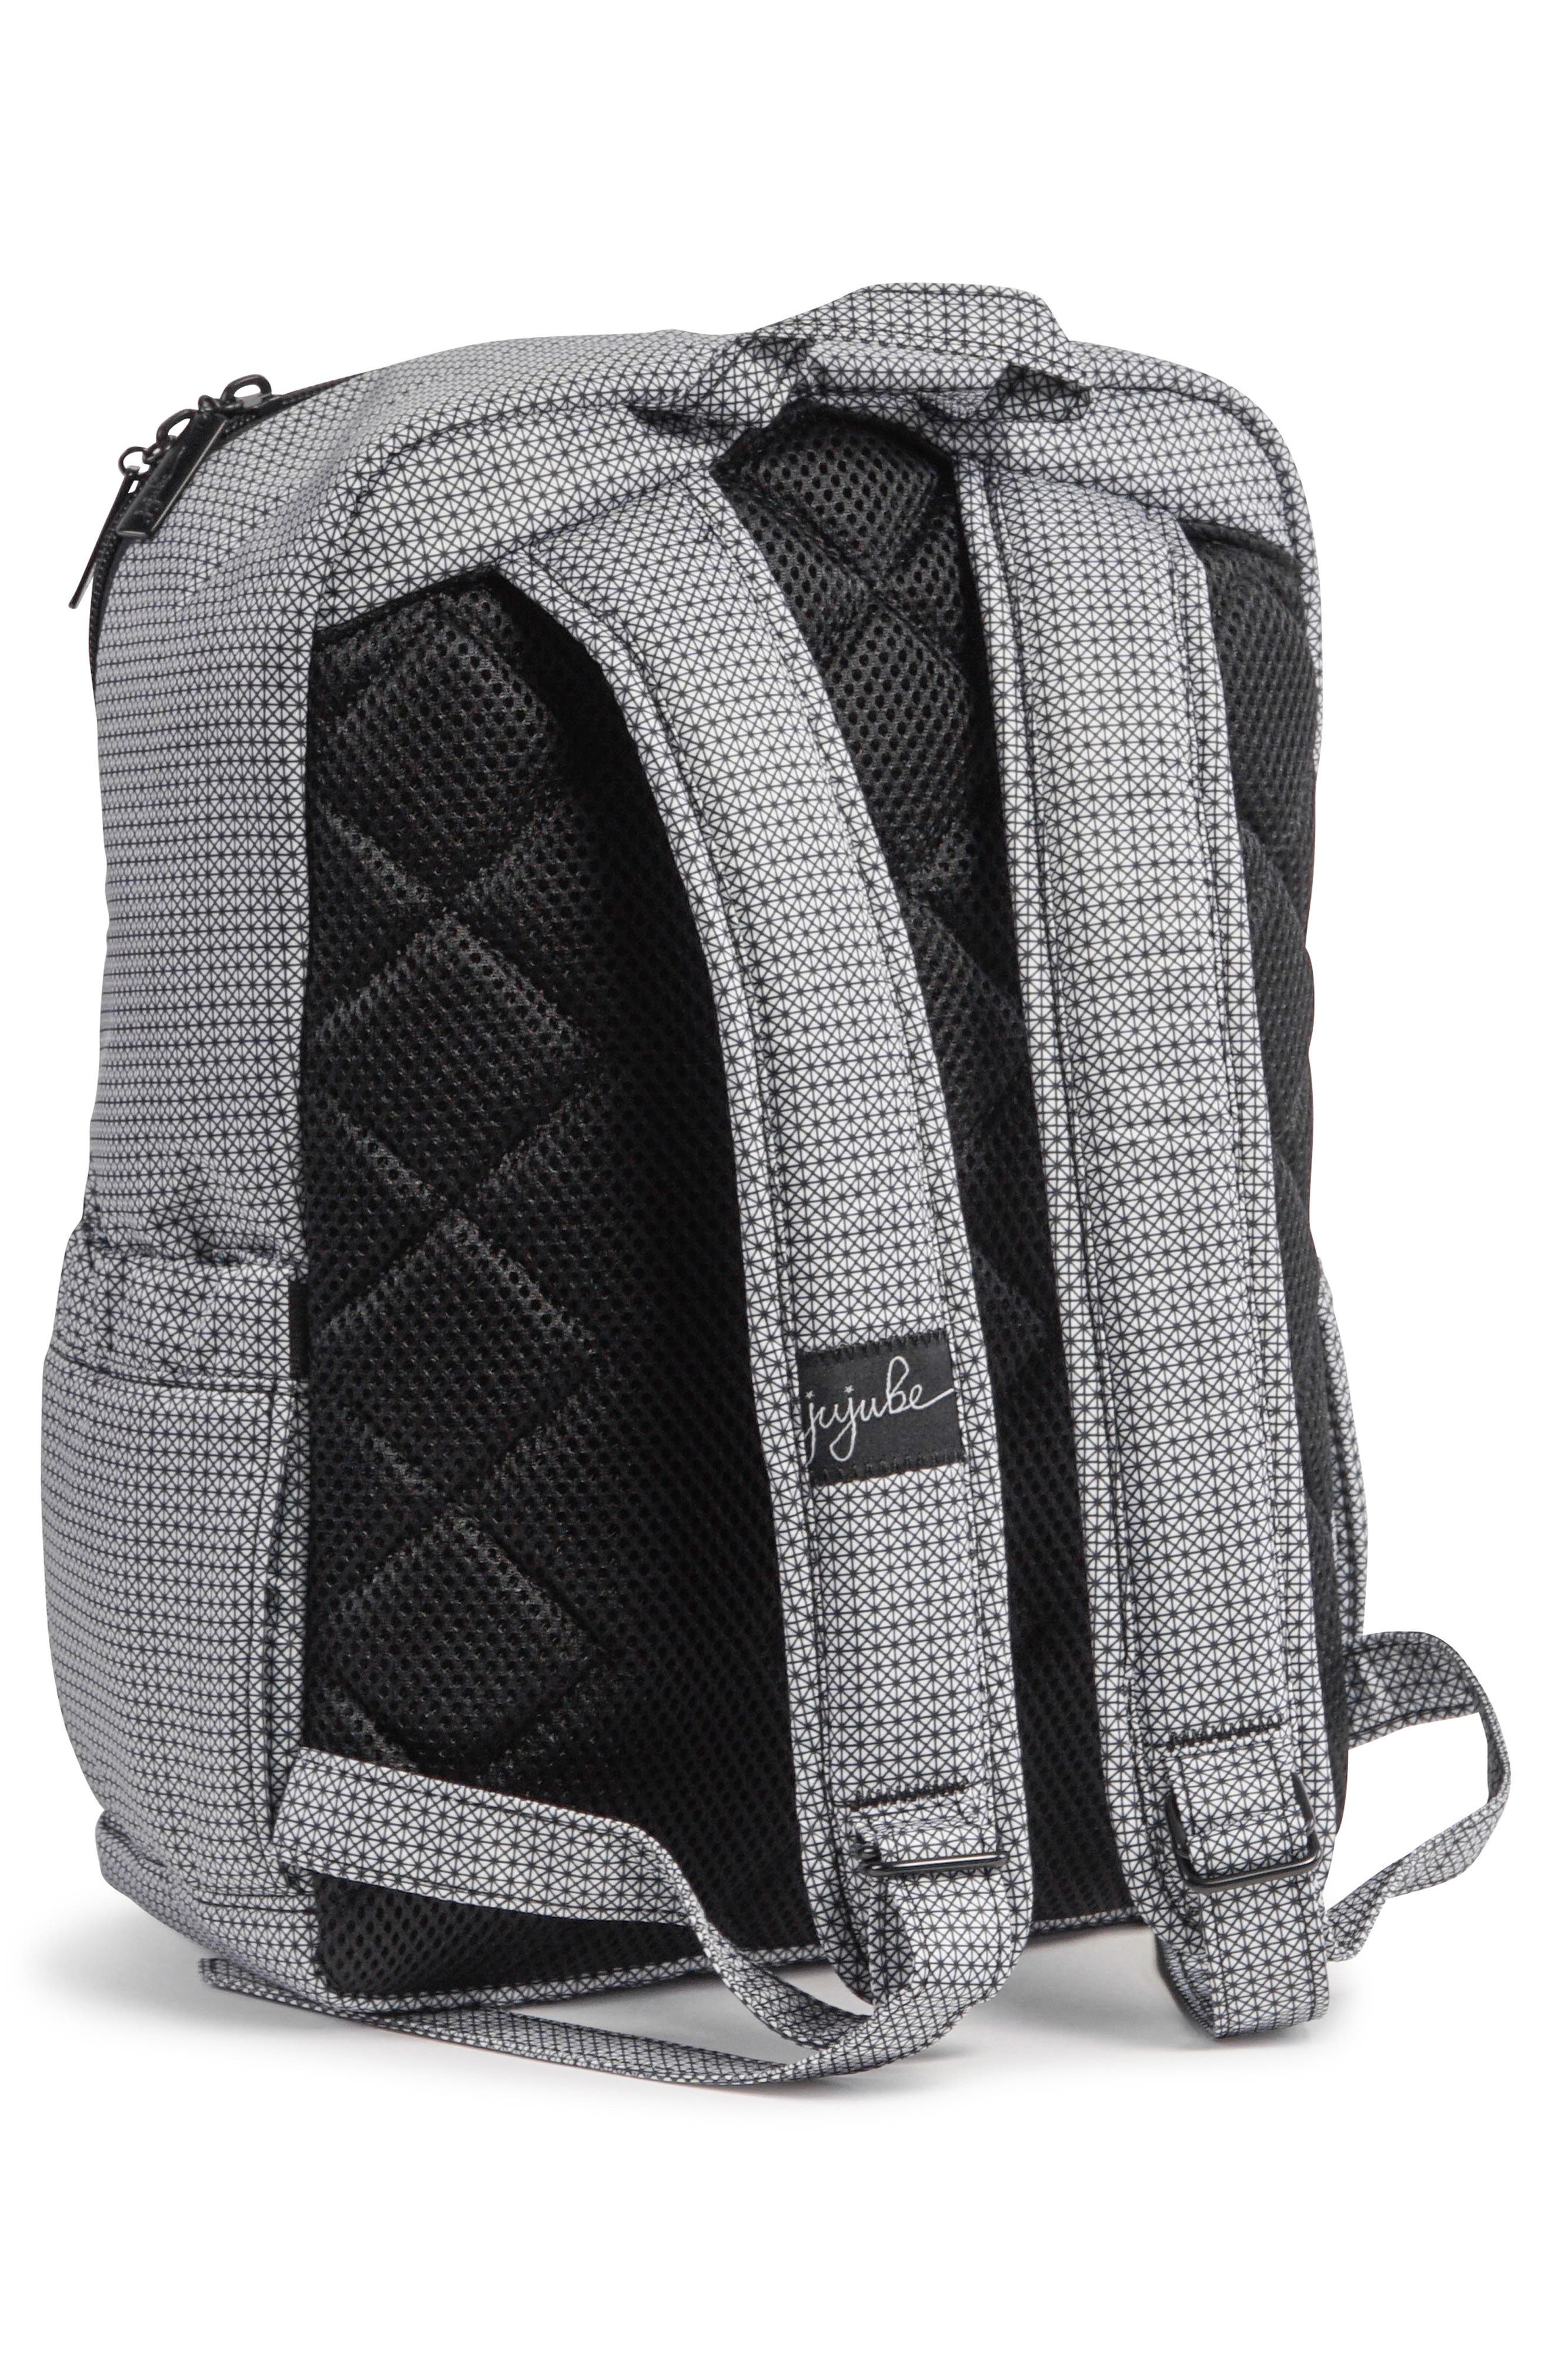 'Mini Be - Onyx Collection' Backpack,                             Alternate thumbnail 8, color,                             BLACK MATRIX